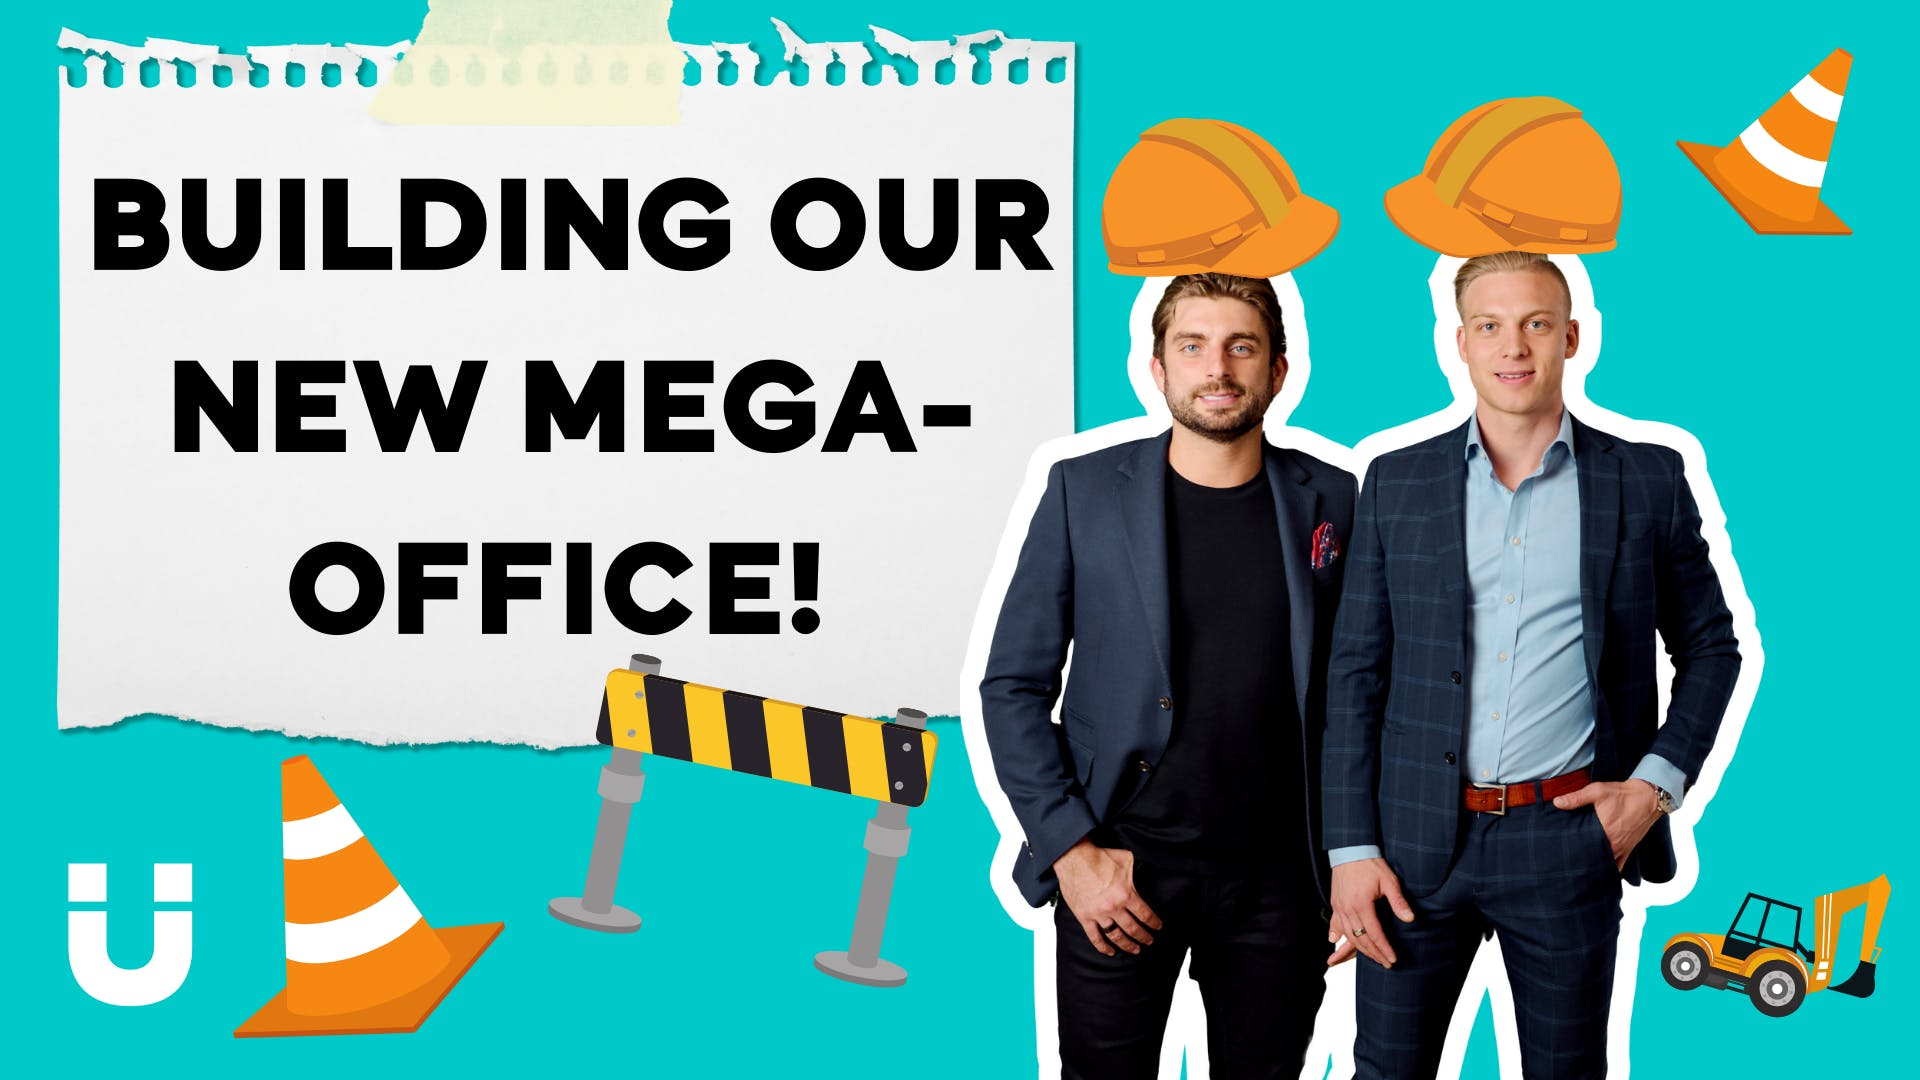 Take a look behind the scenes into the process of building our brand new mega-office in Melbourne!